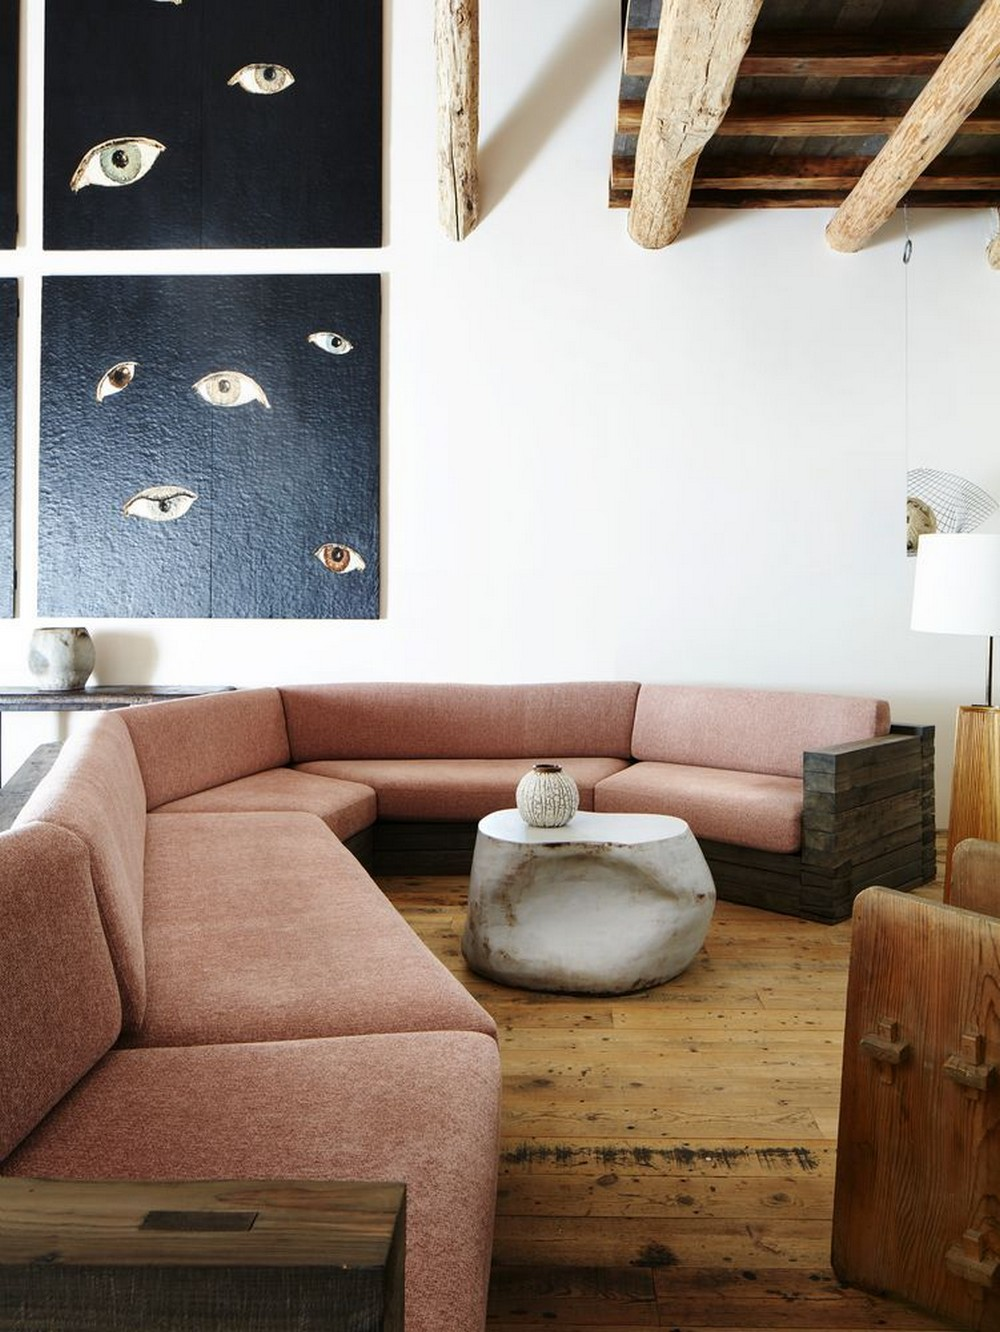 7 Comfy and Stylish Living Room Decor Ideas to Seriously Consider 7 living room decor 7 Comfy and Stylish Living Room Decor Ideas to Seriously Consider 7 Comfy and Stylish Living Room Decor Ideas to Seriously Consider 7